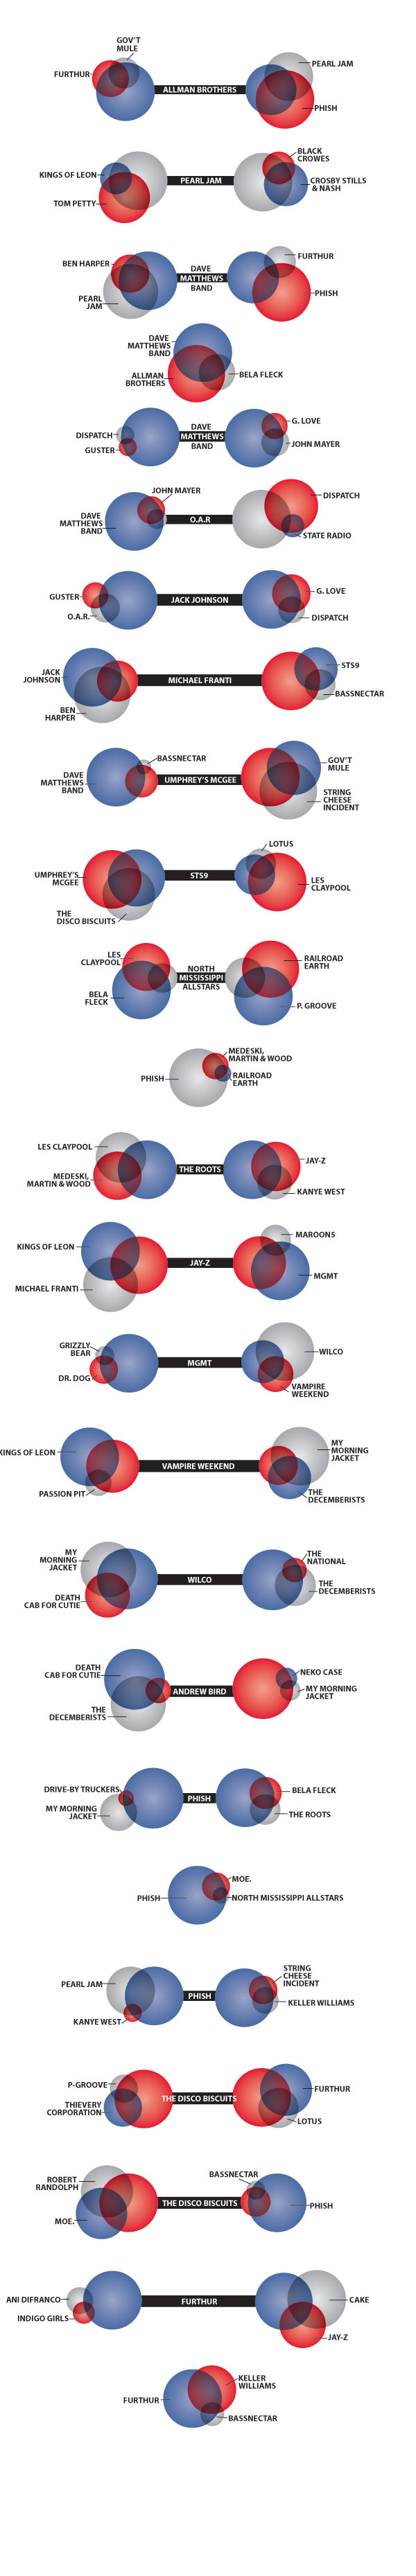 music makeup dna venn diagrams [ 600 x 3718 Pixel ]